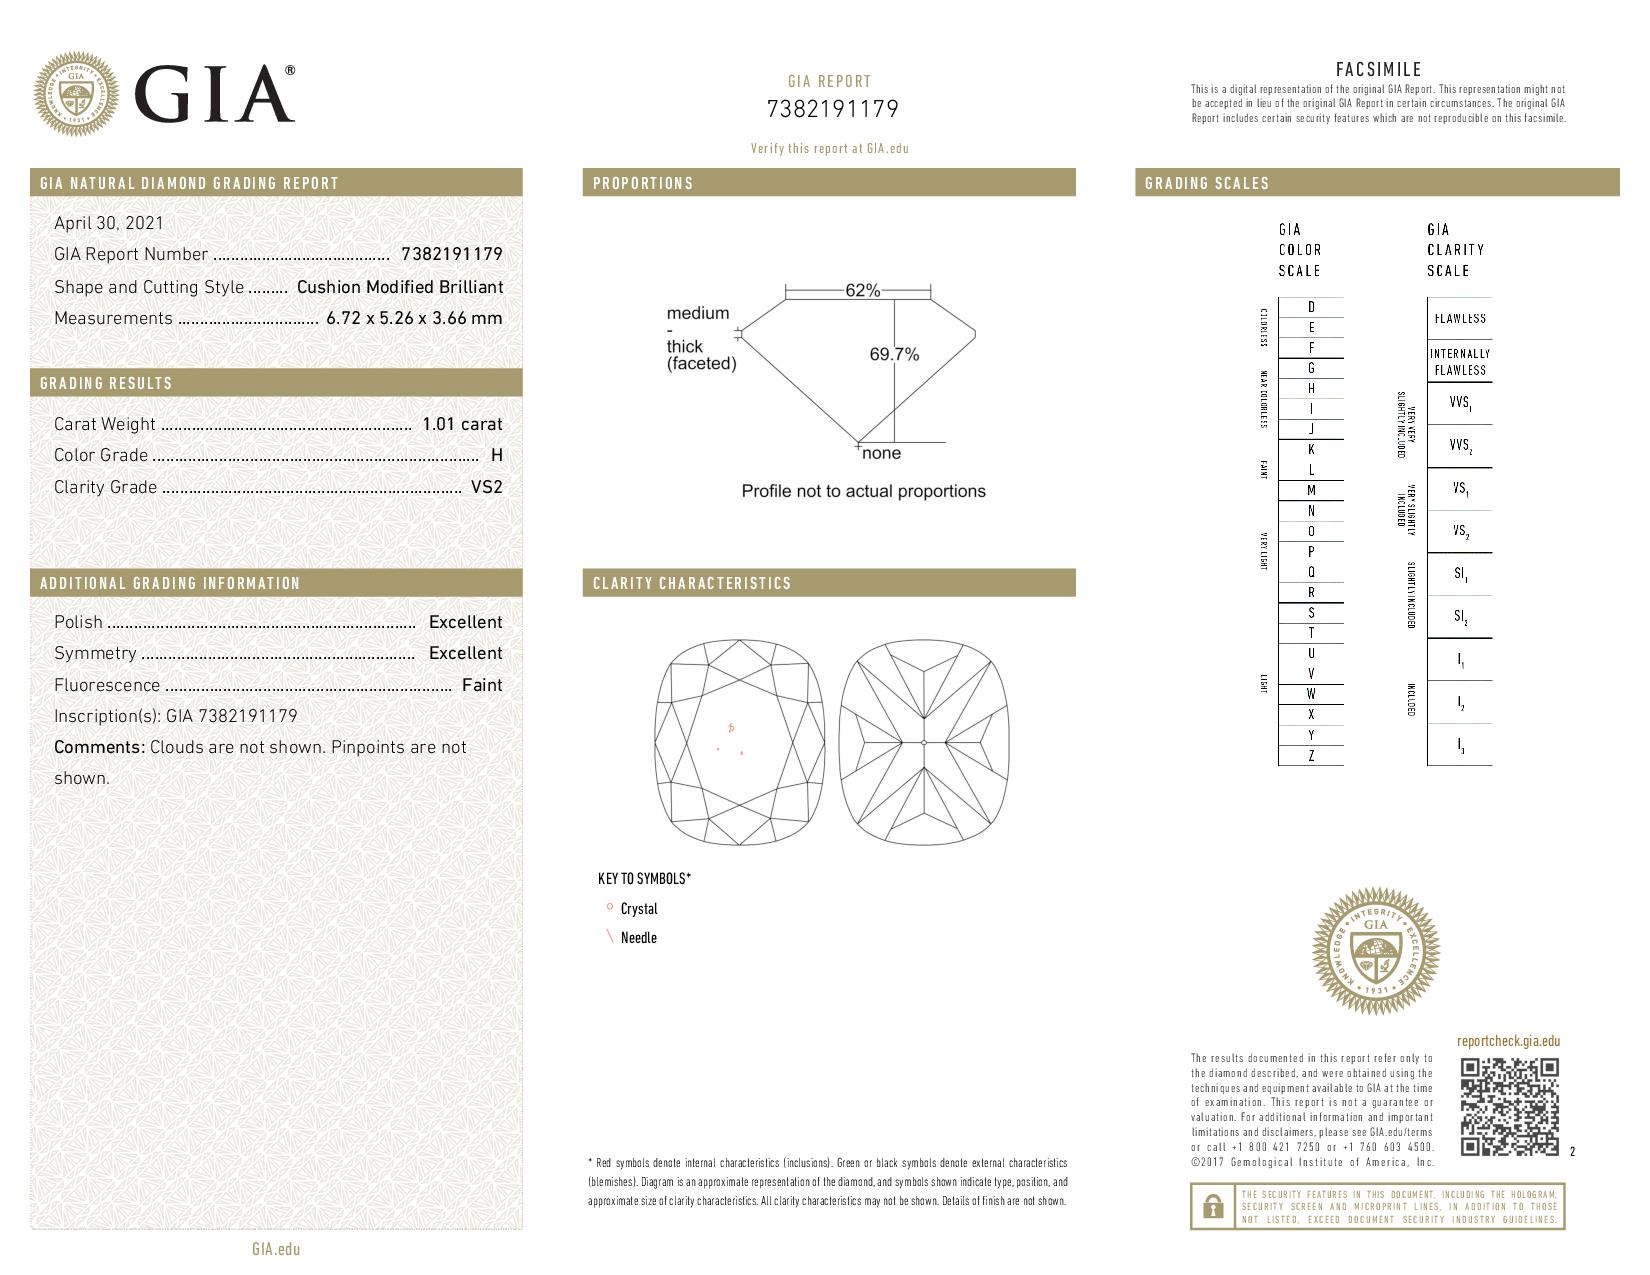 This is a 1.01 carat cushion shape, H color, VS2 clarity natural diamond accompanied by a GIA grading report.